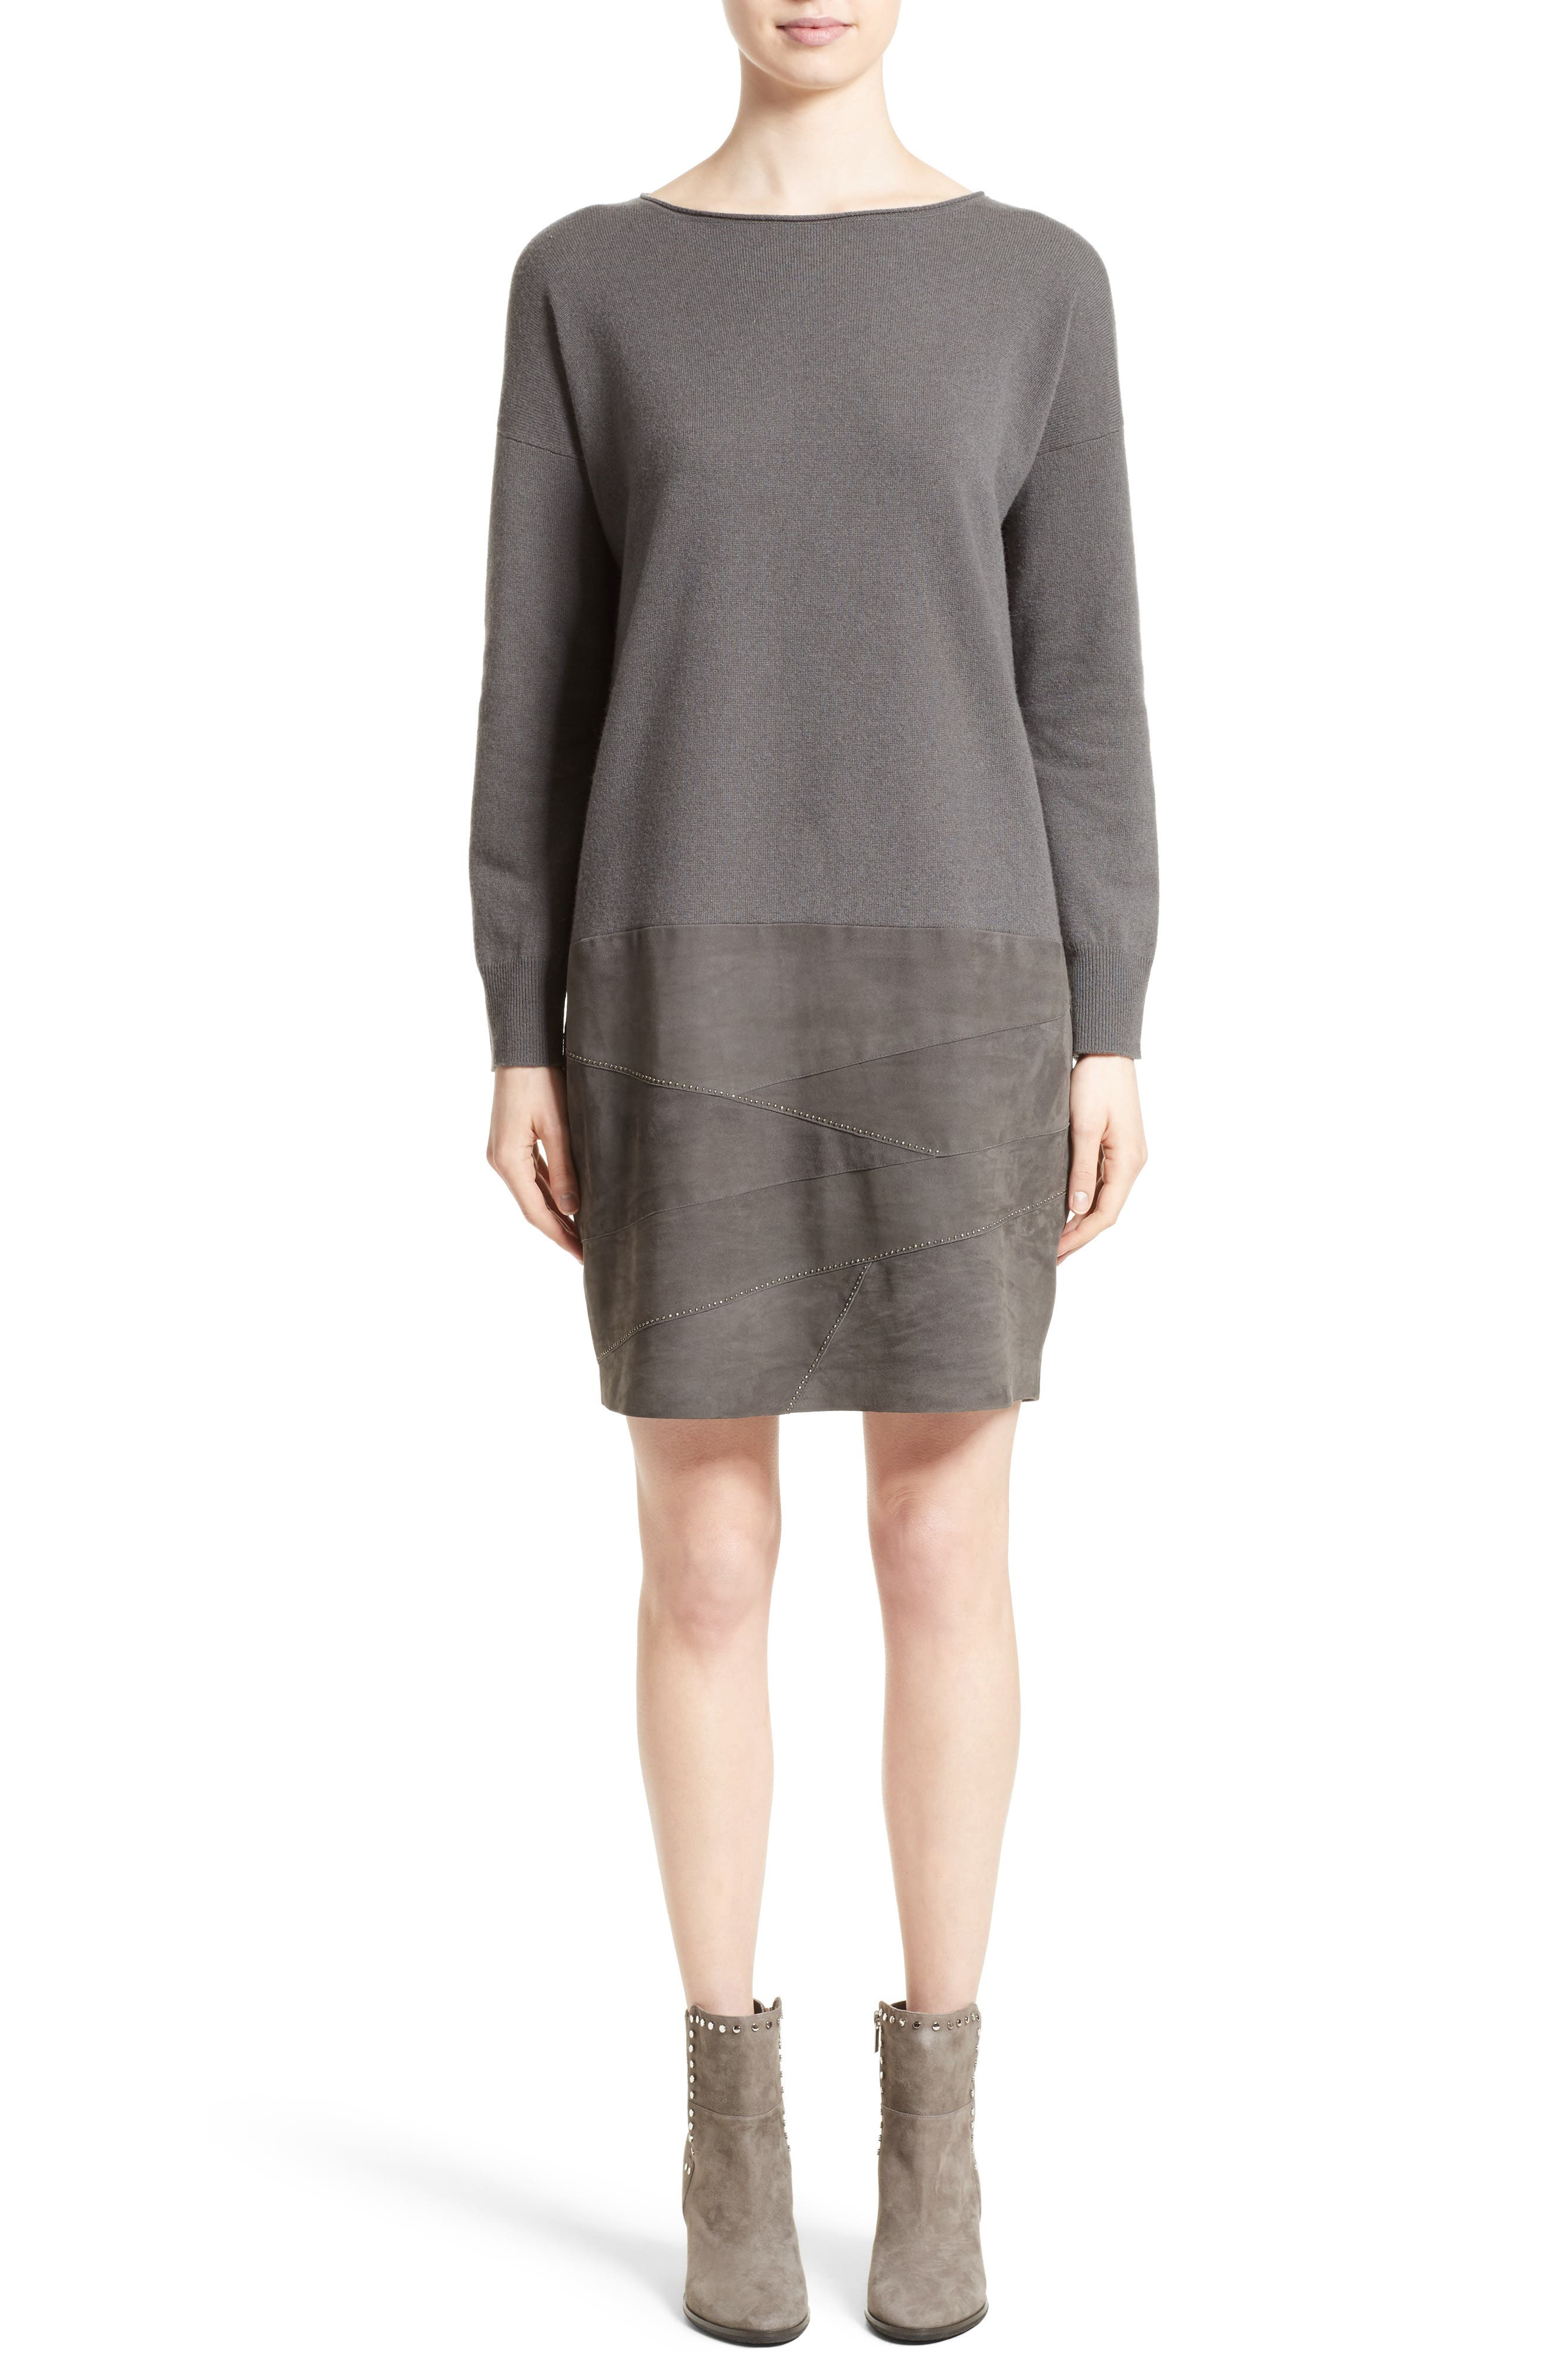 Fabiana Filippi Suede Panel Wool Blend Knit Dress